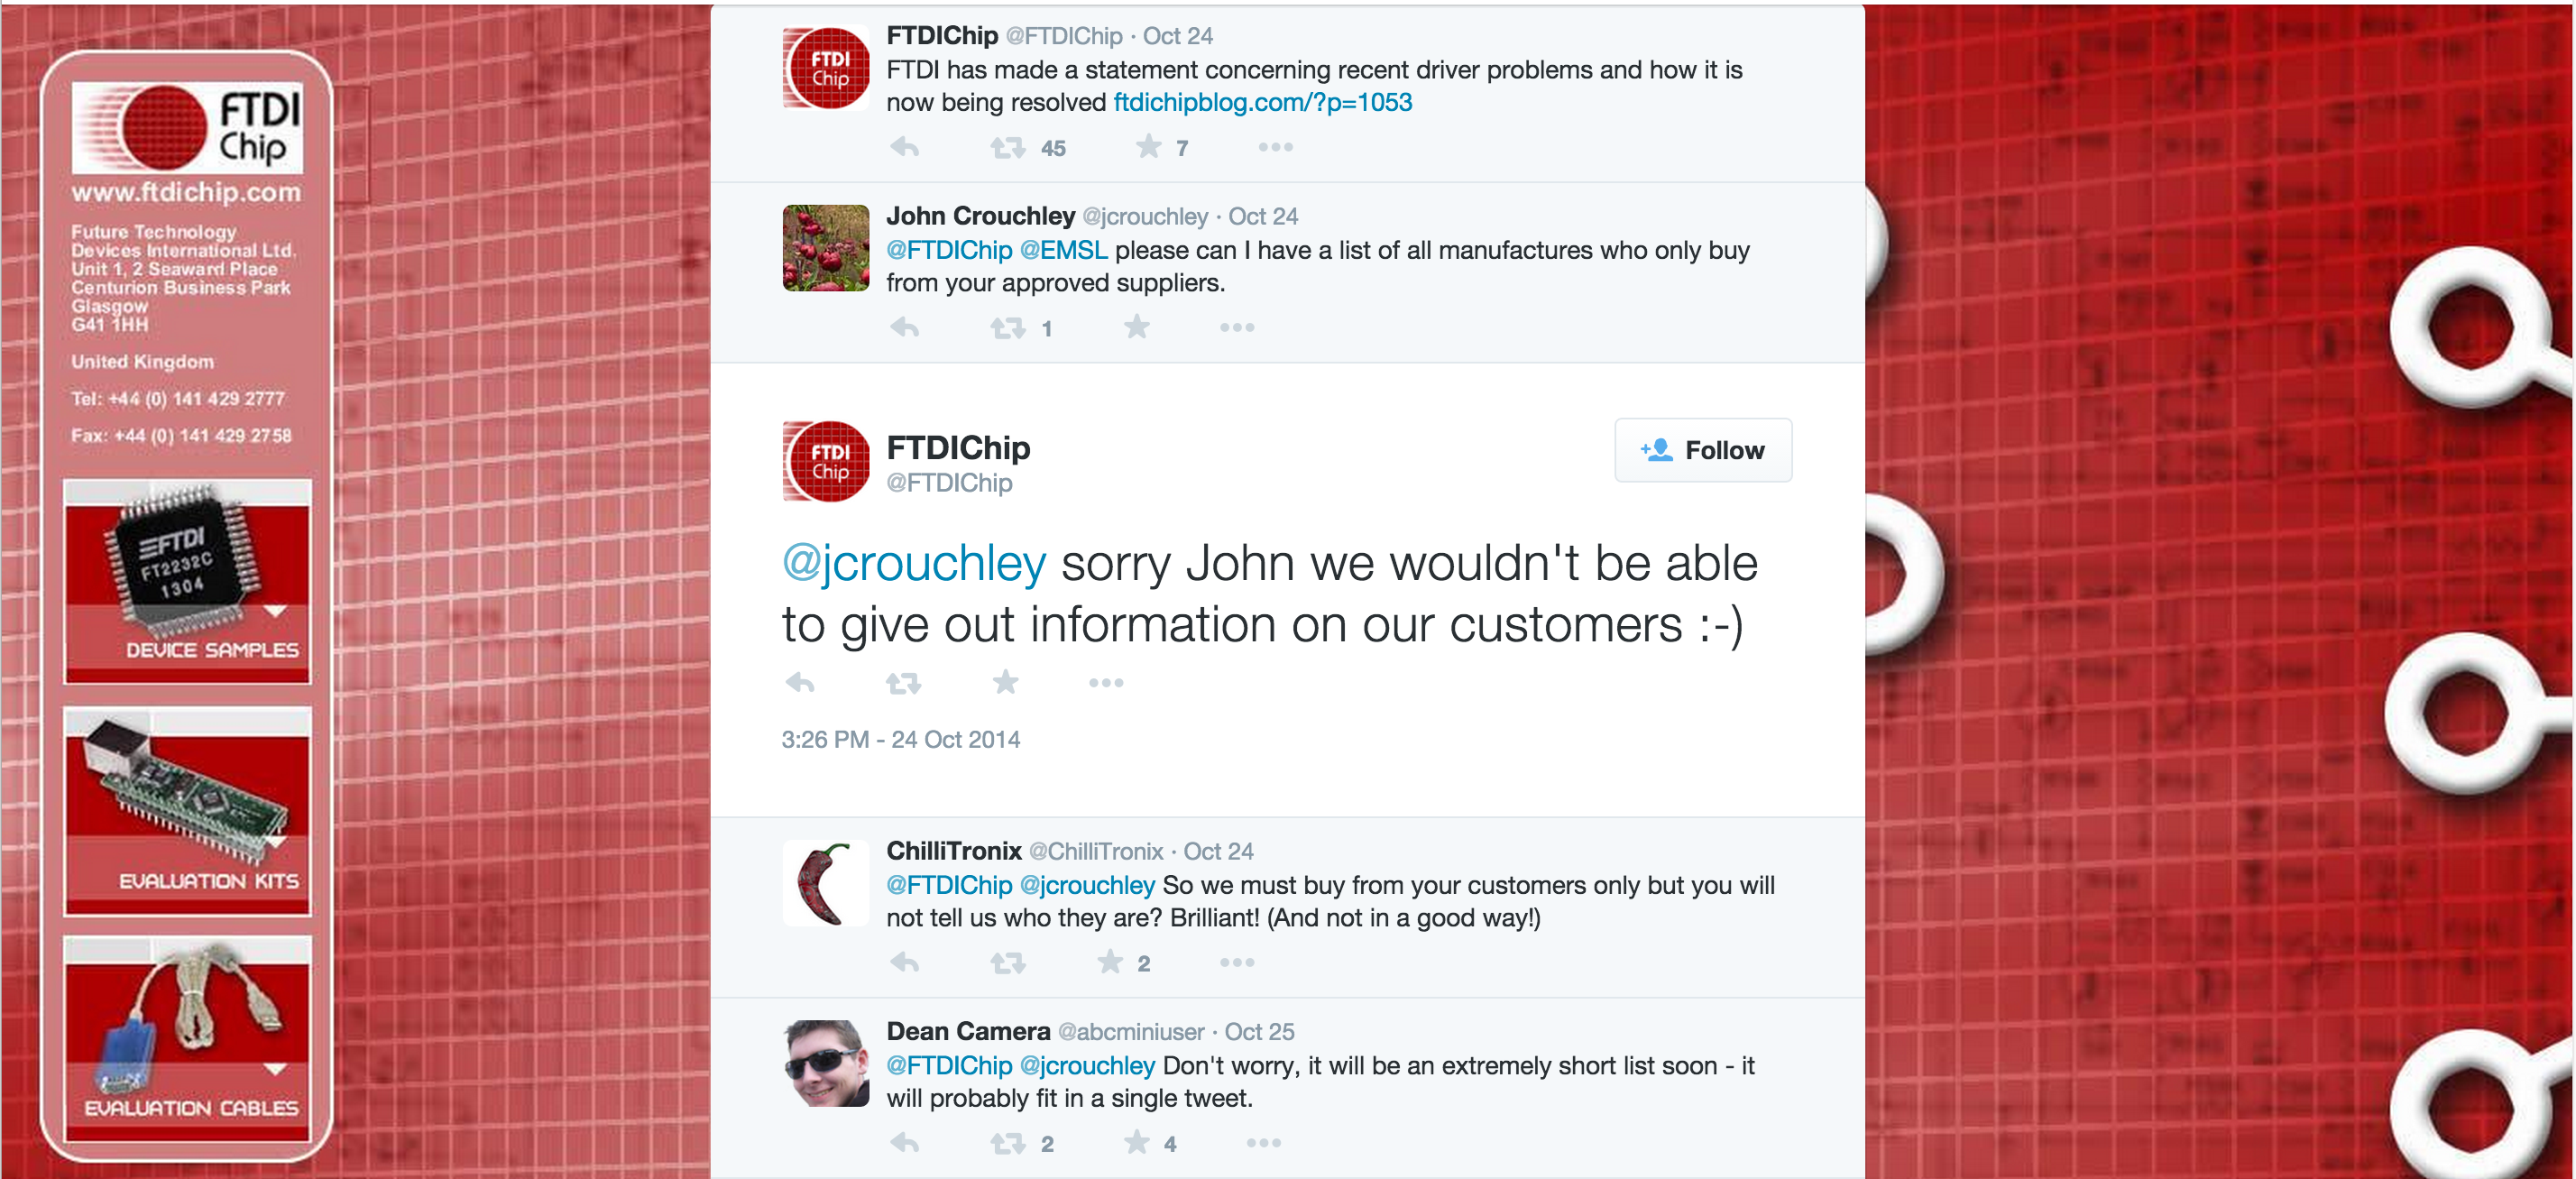 An interaction between an FTDI spokesperson and users on Twitter. Playing coy may just lose customers.